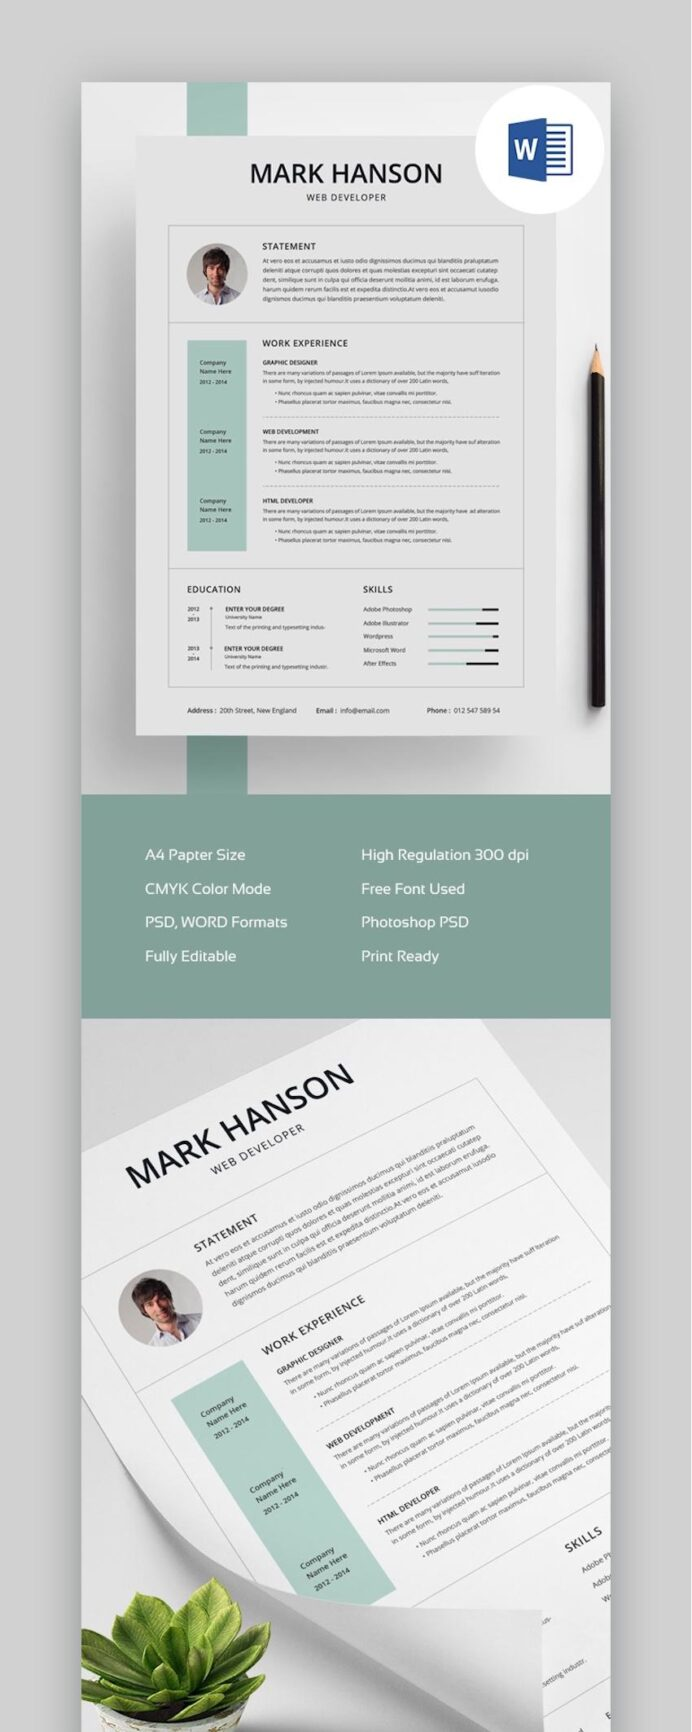 free cv resume templates freebies graphic design junctiongraphic junction template word Resume Free Graphic Design Resume Template Word